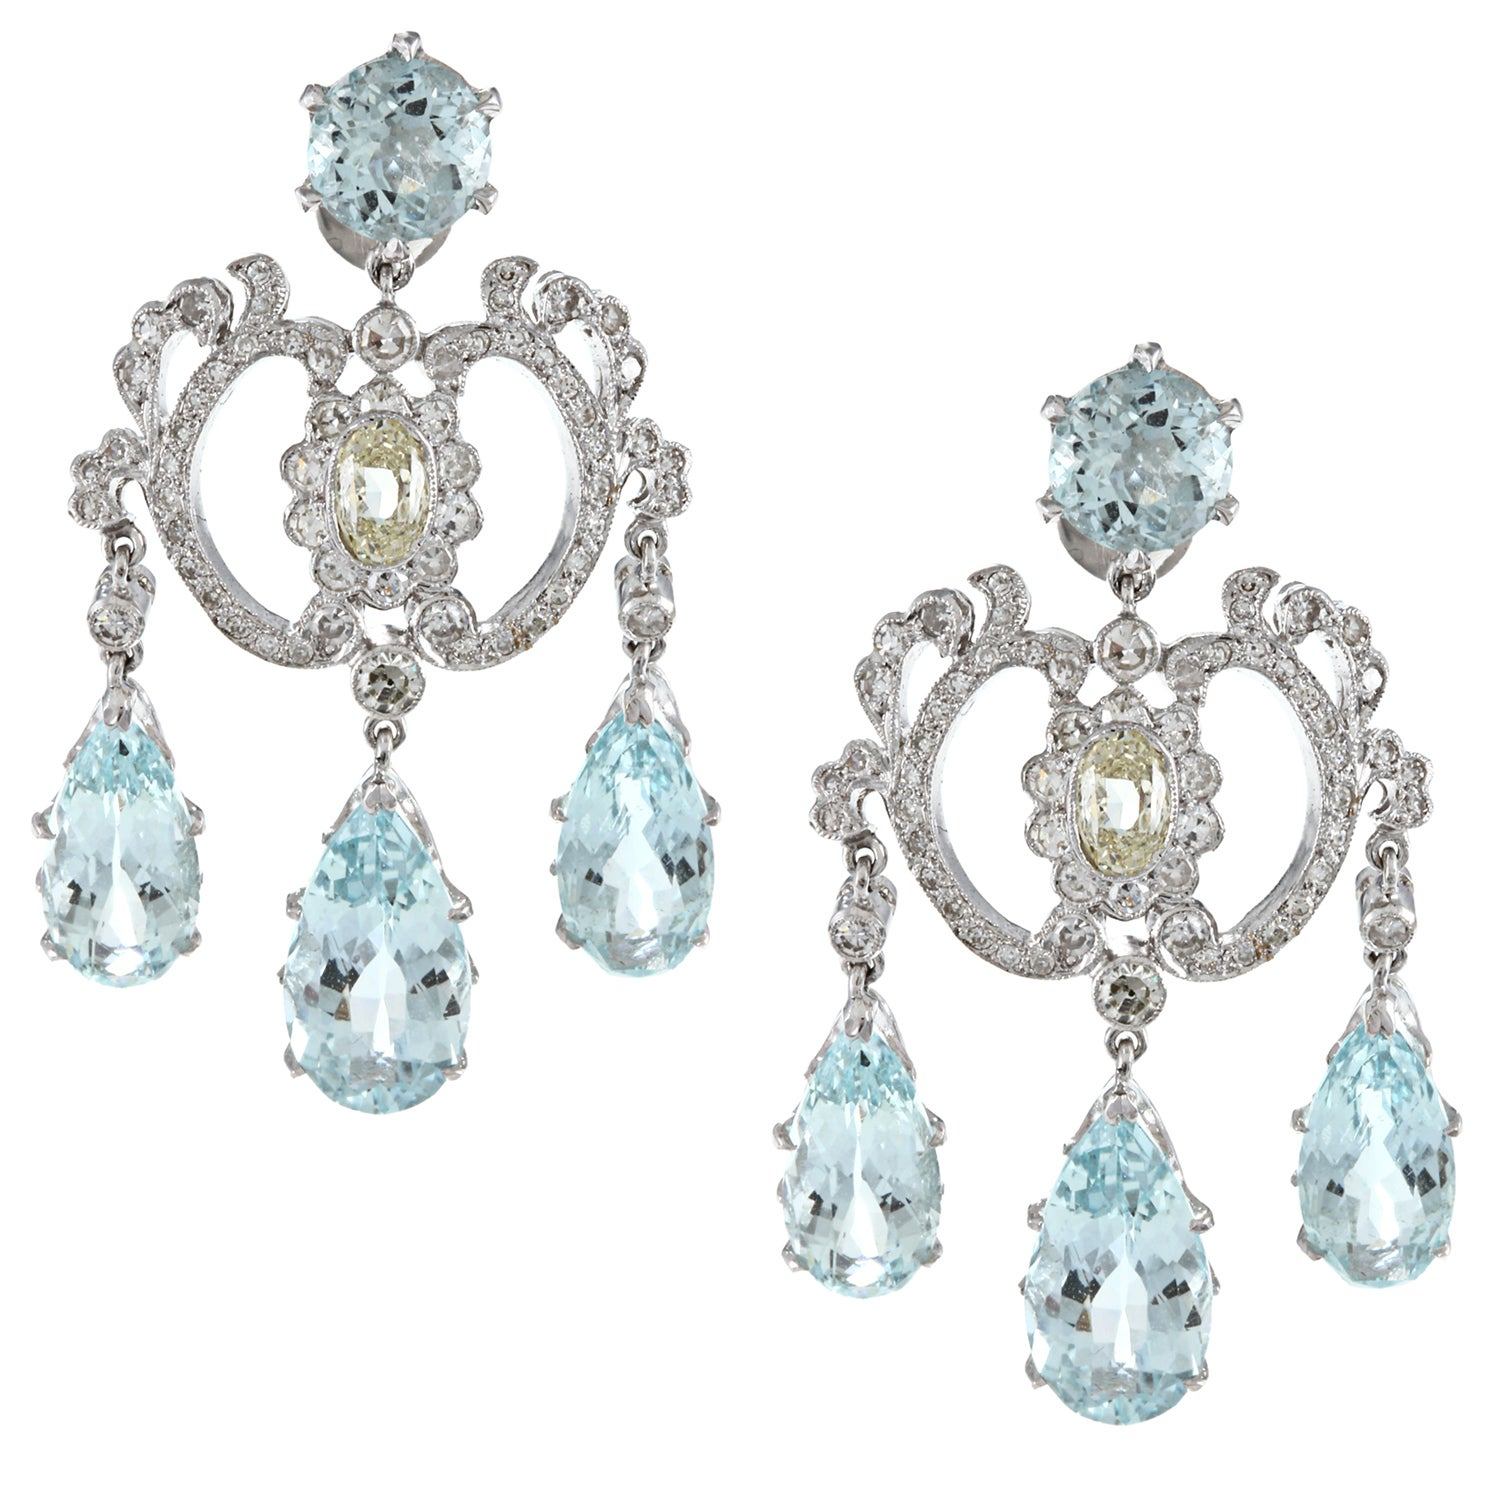 Pre Owned 18k White Gold 2ct Tdw Aquamarine Chandelier Earrings M N Si1 Si2 On Free Shipping Today 6661103